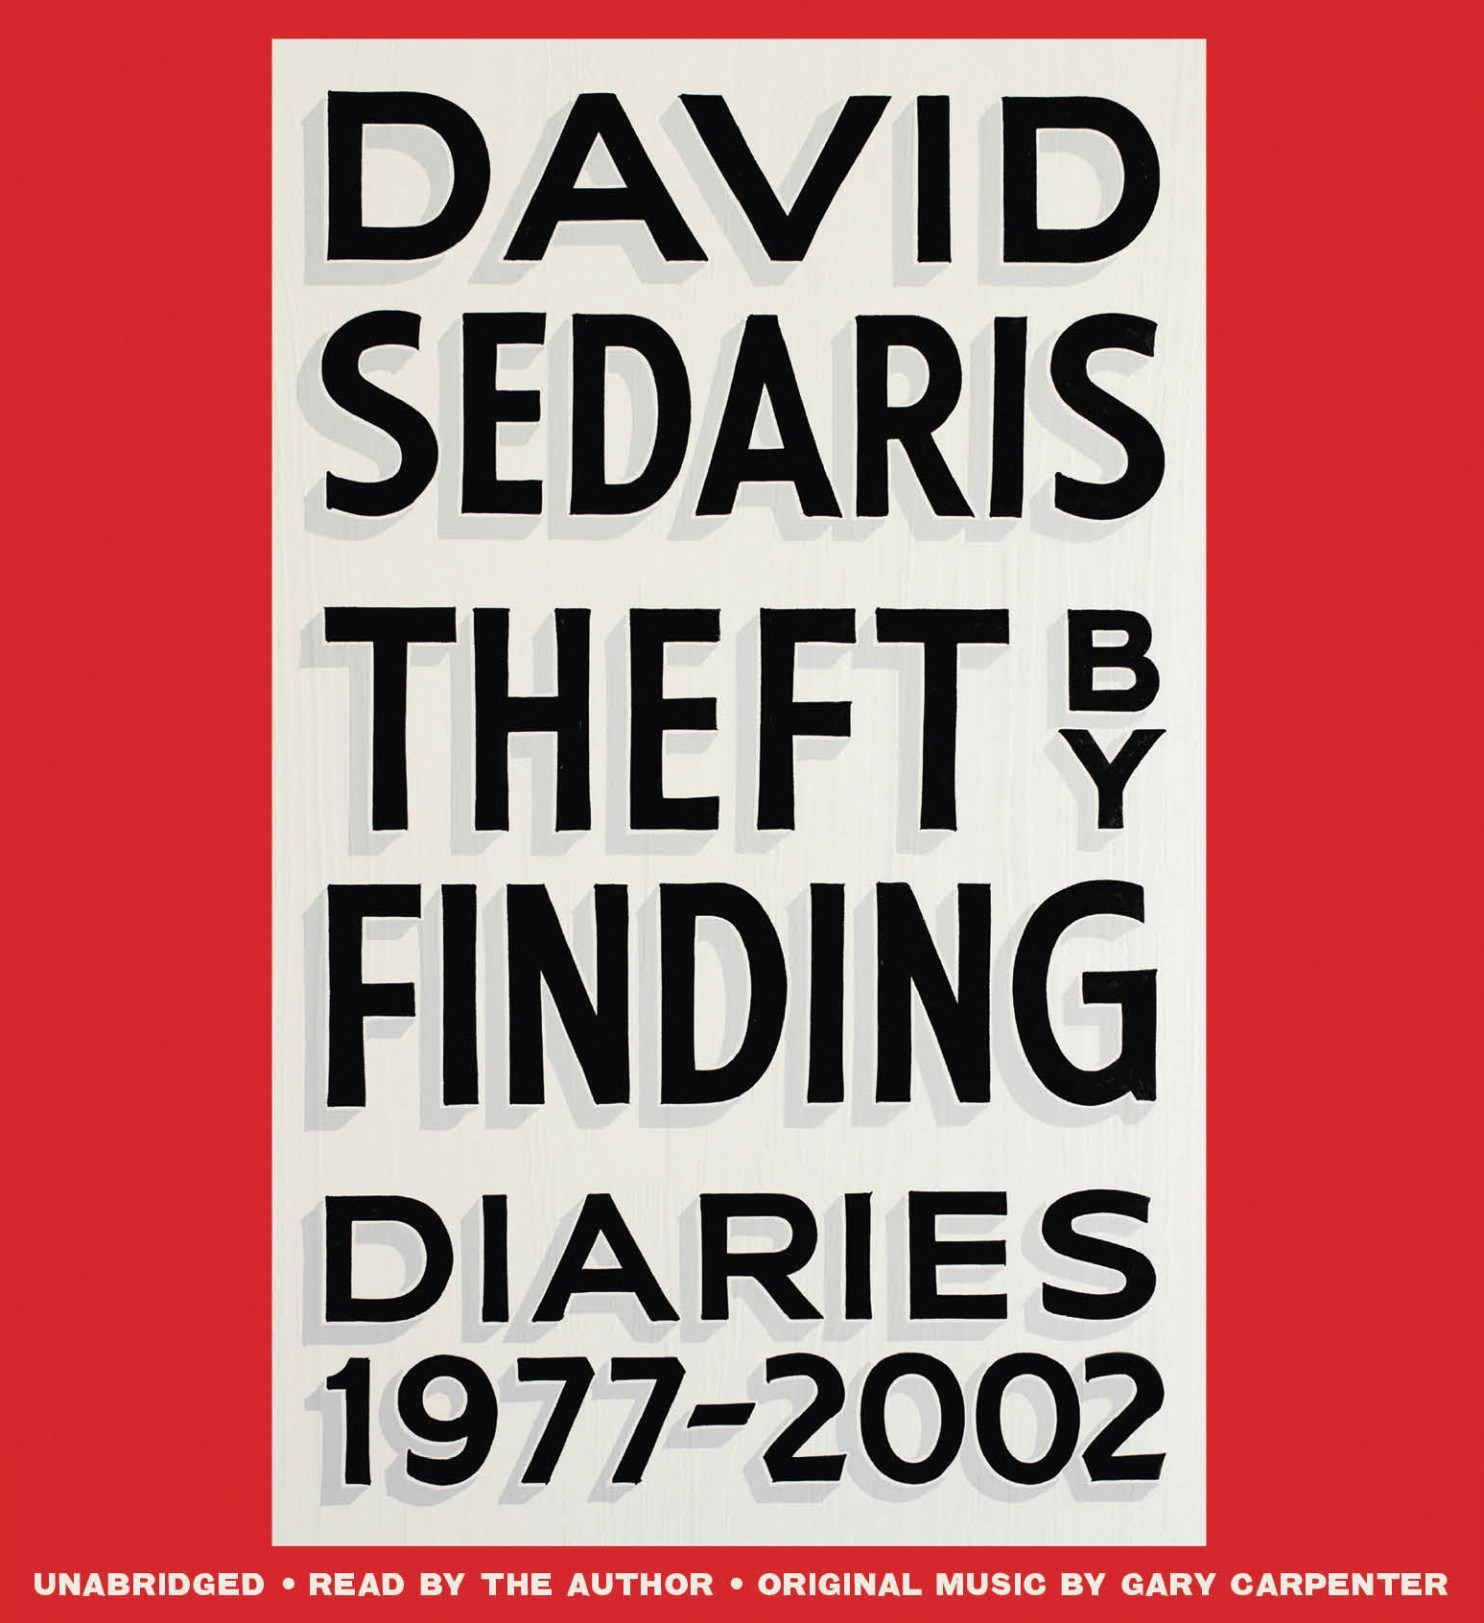 022 Theft By Finding1t20170517 Essay Example David Sedaris Fascinating Essays New Yorker Calypso Full